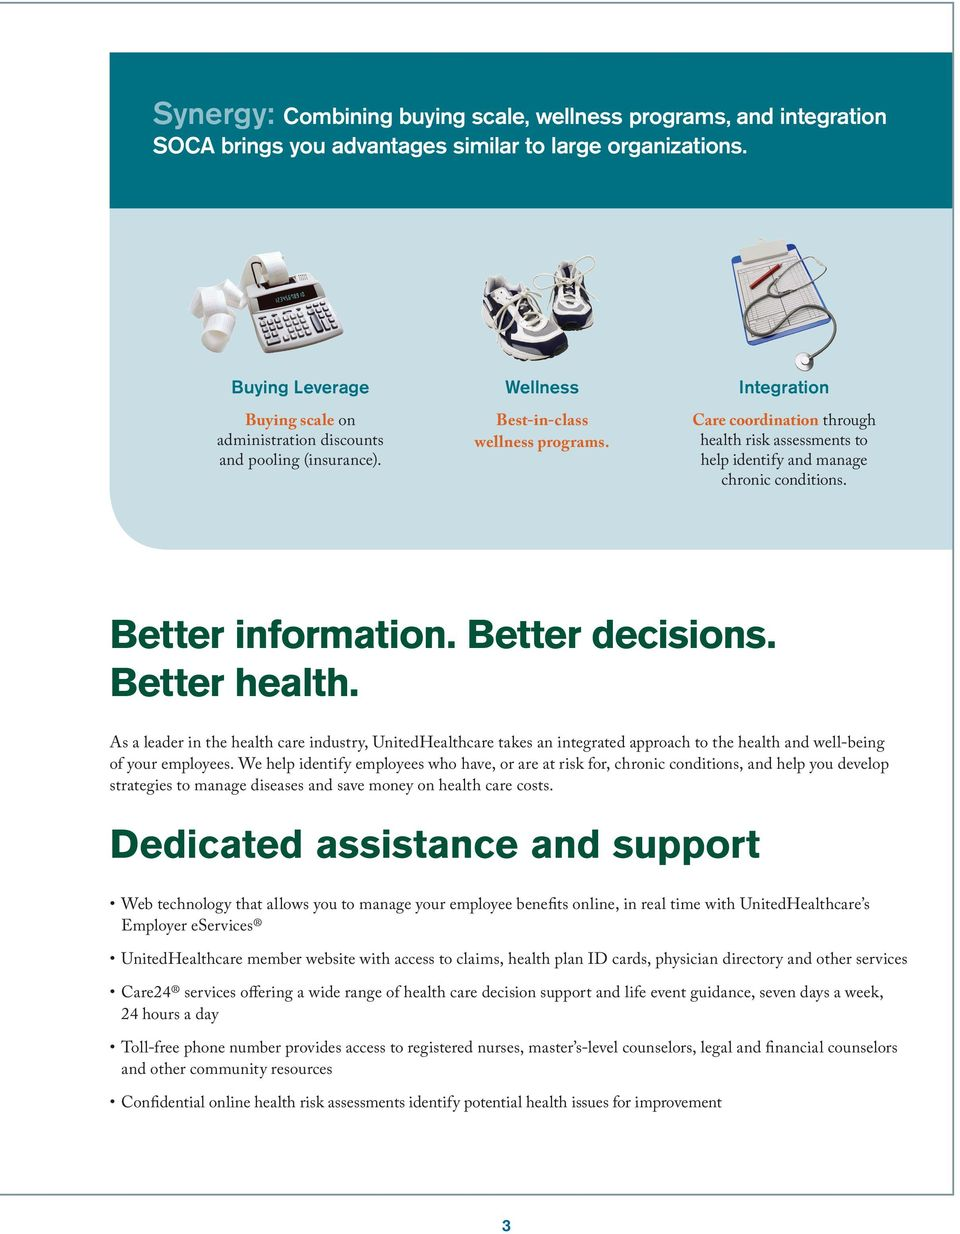 Integration Care coordination through health risk assessments to help identify and manage chronic conditions. Better information. Better decisions. Better health.